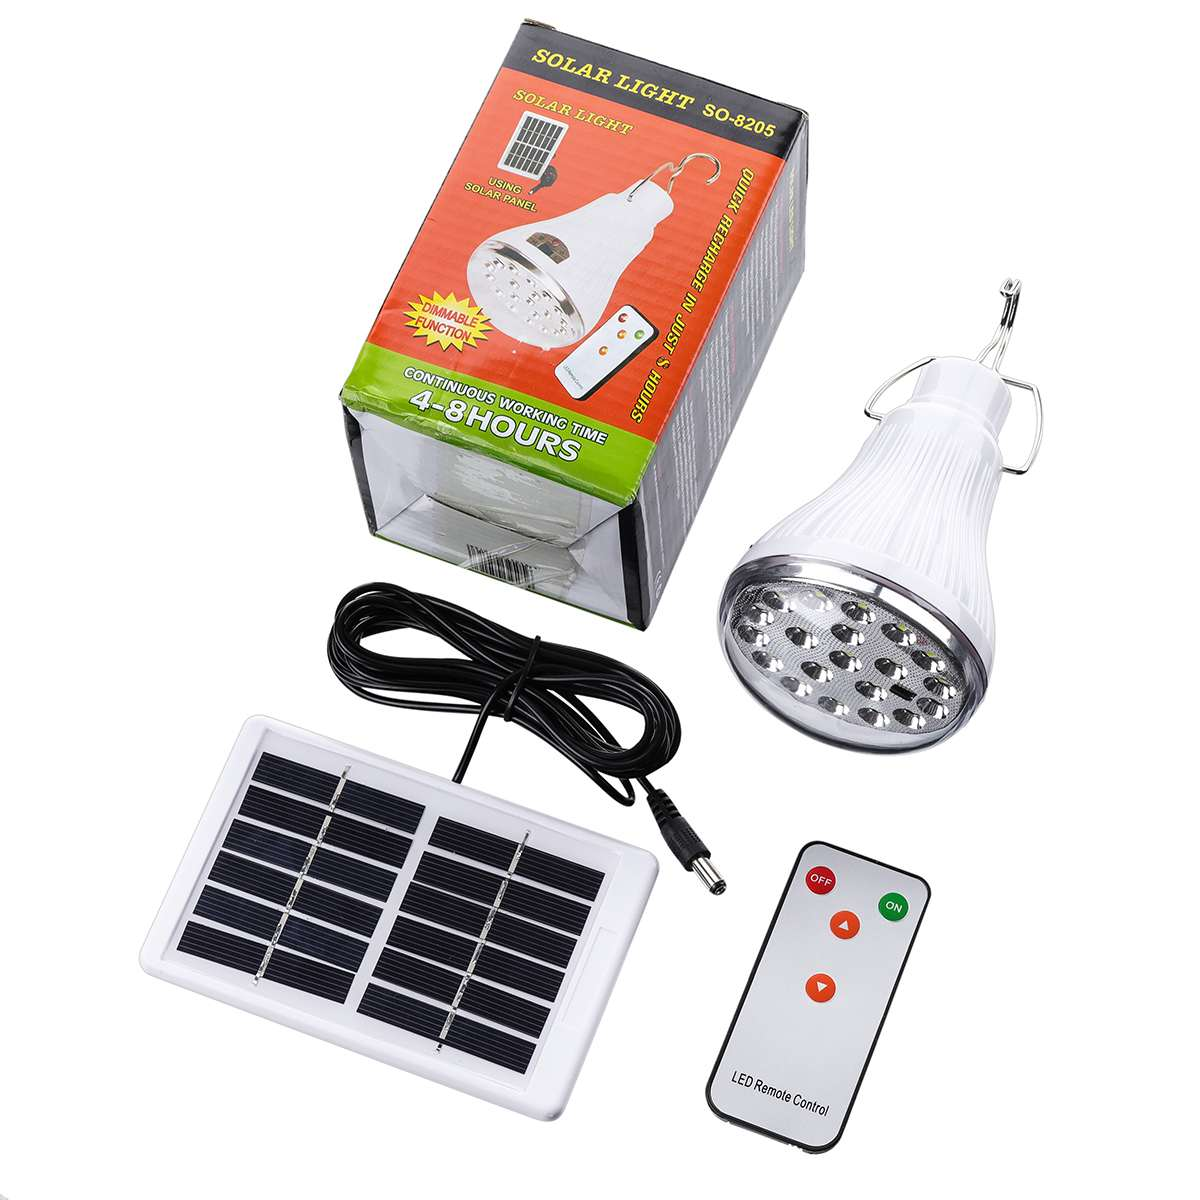 New Remote Control LED Emergency Light Tent Lamps Outdoor Camping Lanterns New Portable Lanterns Solar Panel Camping lightNew Remote Control LED Emergency Light Tent Lamps Outdoor Camping Lanterns New Portable Lanterns Solar Panel Camping light